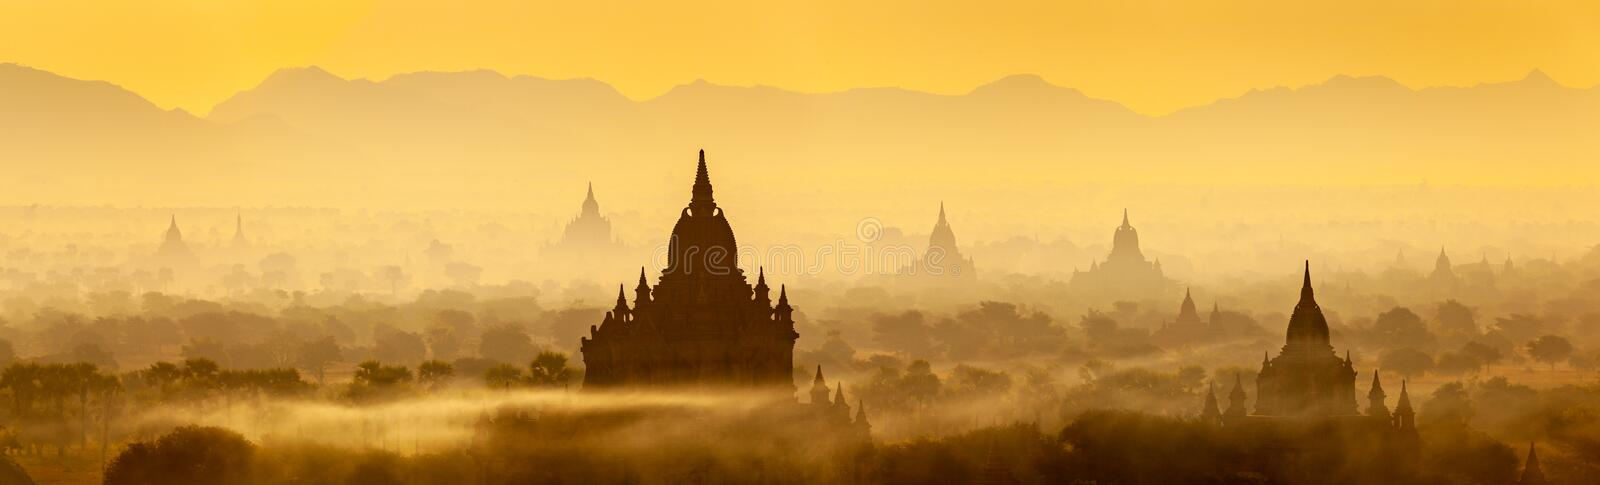 Sunrise landscape view with silhouettes of old temples, Bagan, Myanmar Burma stock image